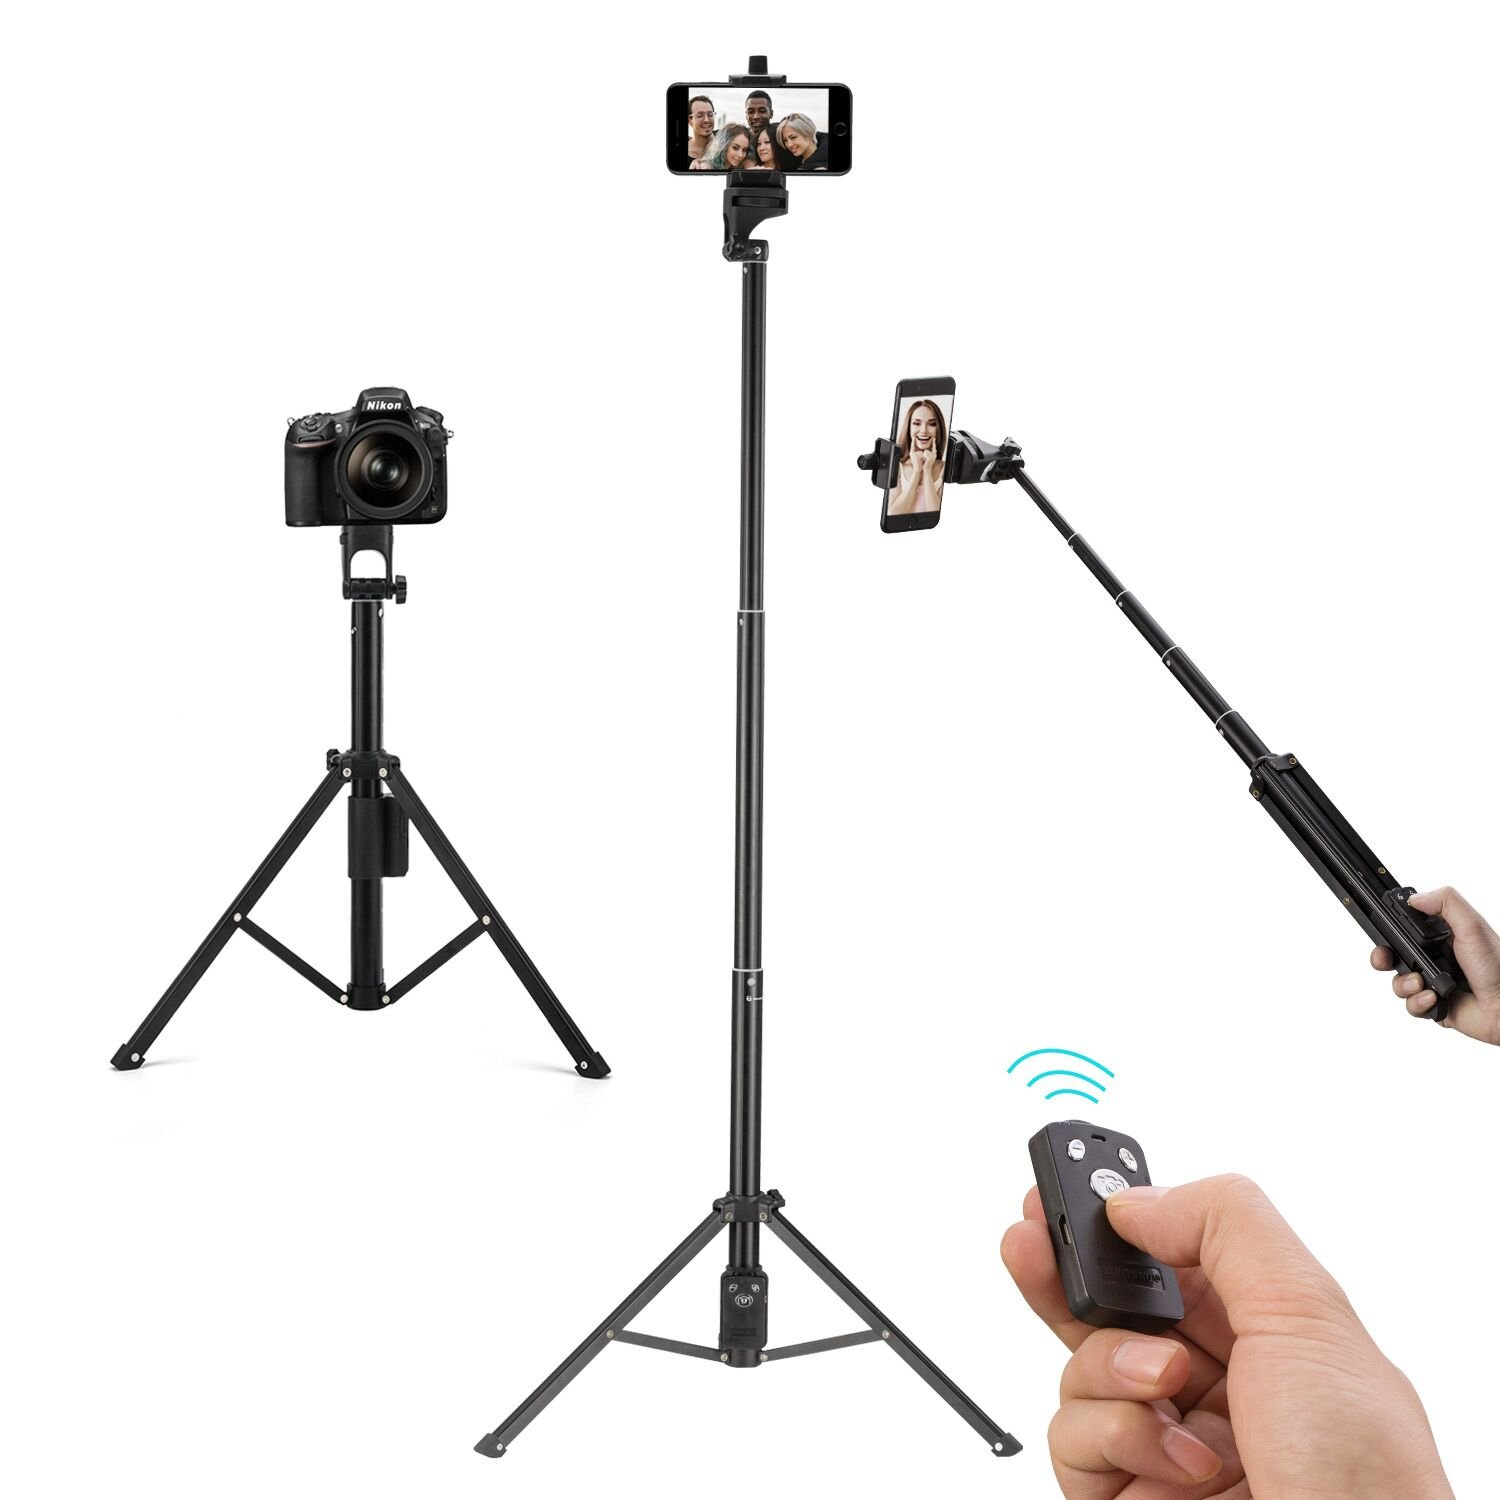 Eocean Selfie Stick Tripod, 54 Inch Adjustable I Phone Tripod, Extendable Camera Tripod For Cellphone And Camera, With Wireless Remote For I Phone 8/8 Plus/X/7/7 Plus/Galaxy/Google by Eocean